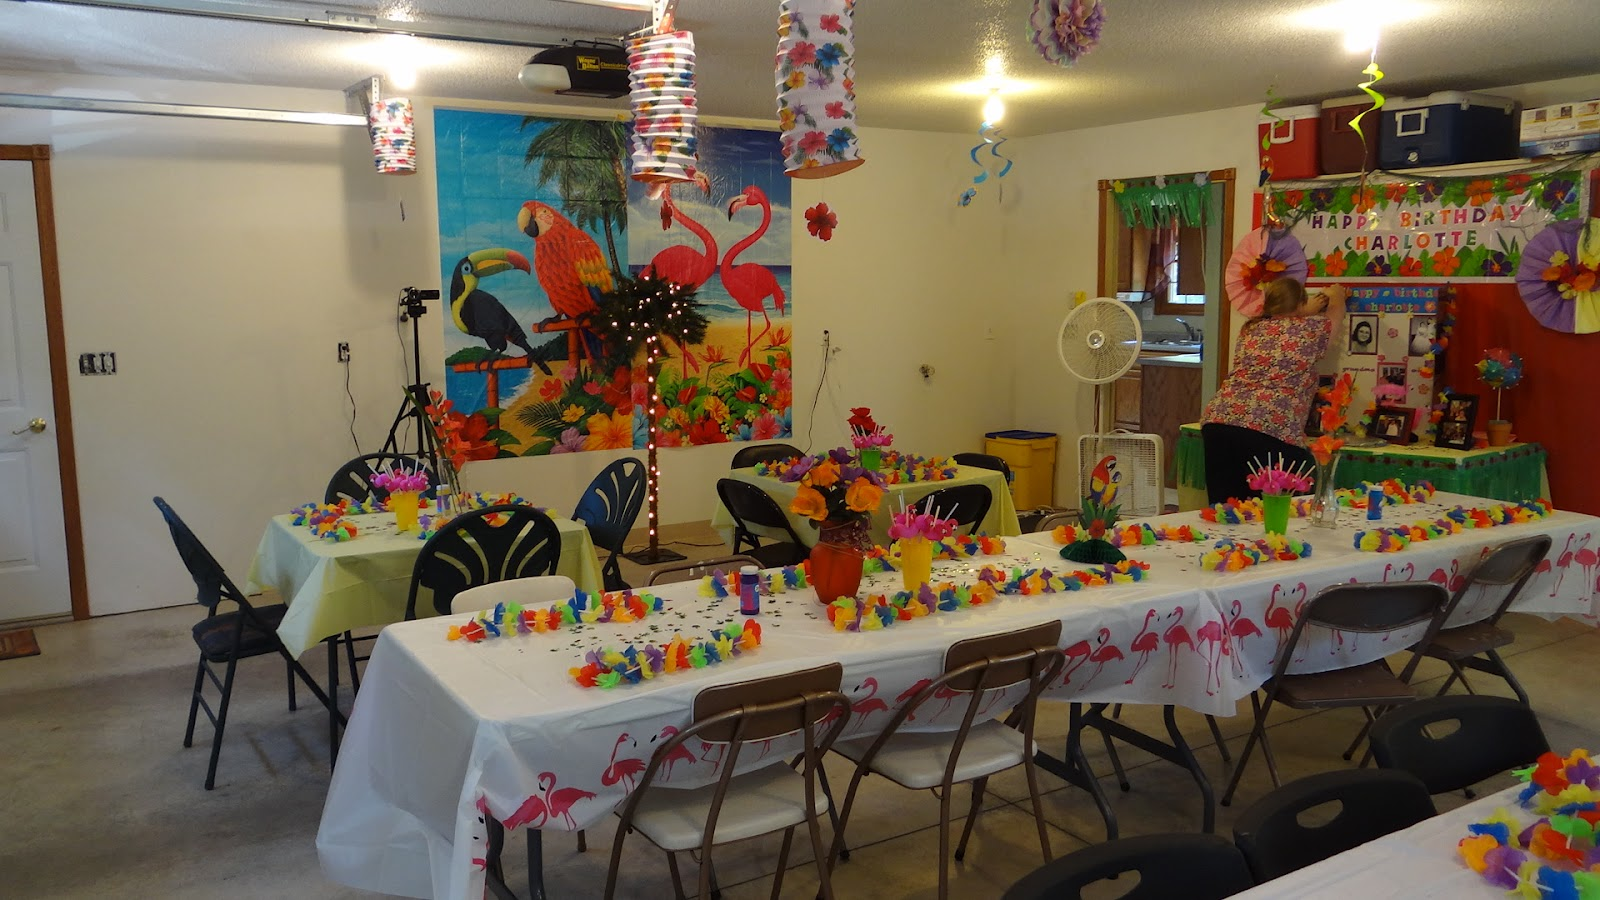 The blooming daisy granny 39 s 70th hawawiian birthday party for 70th birthday decoration